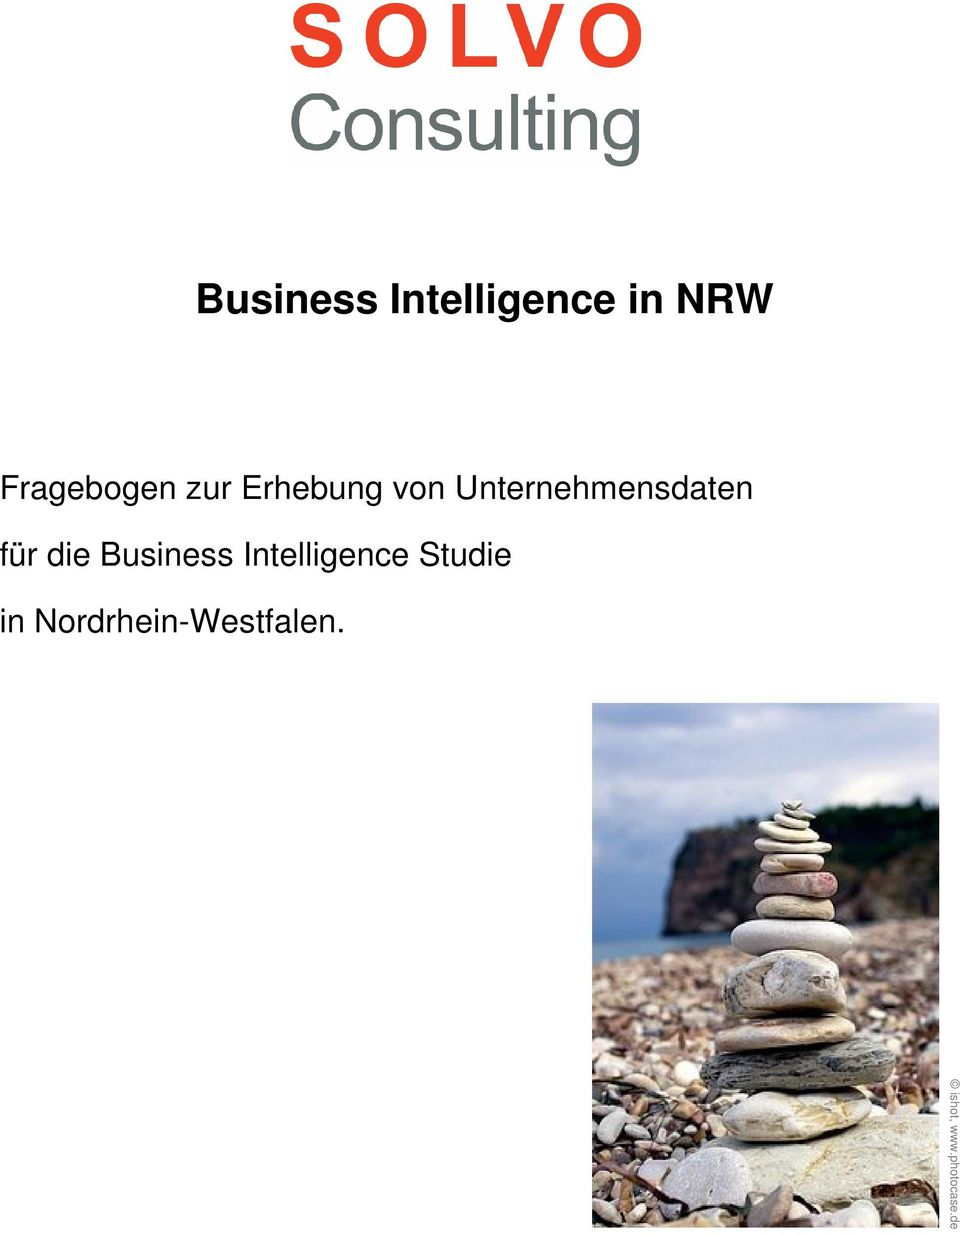 Business Intelligence Studie in